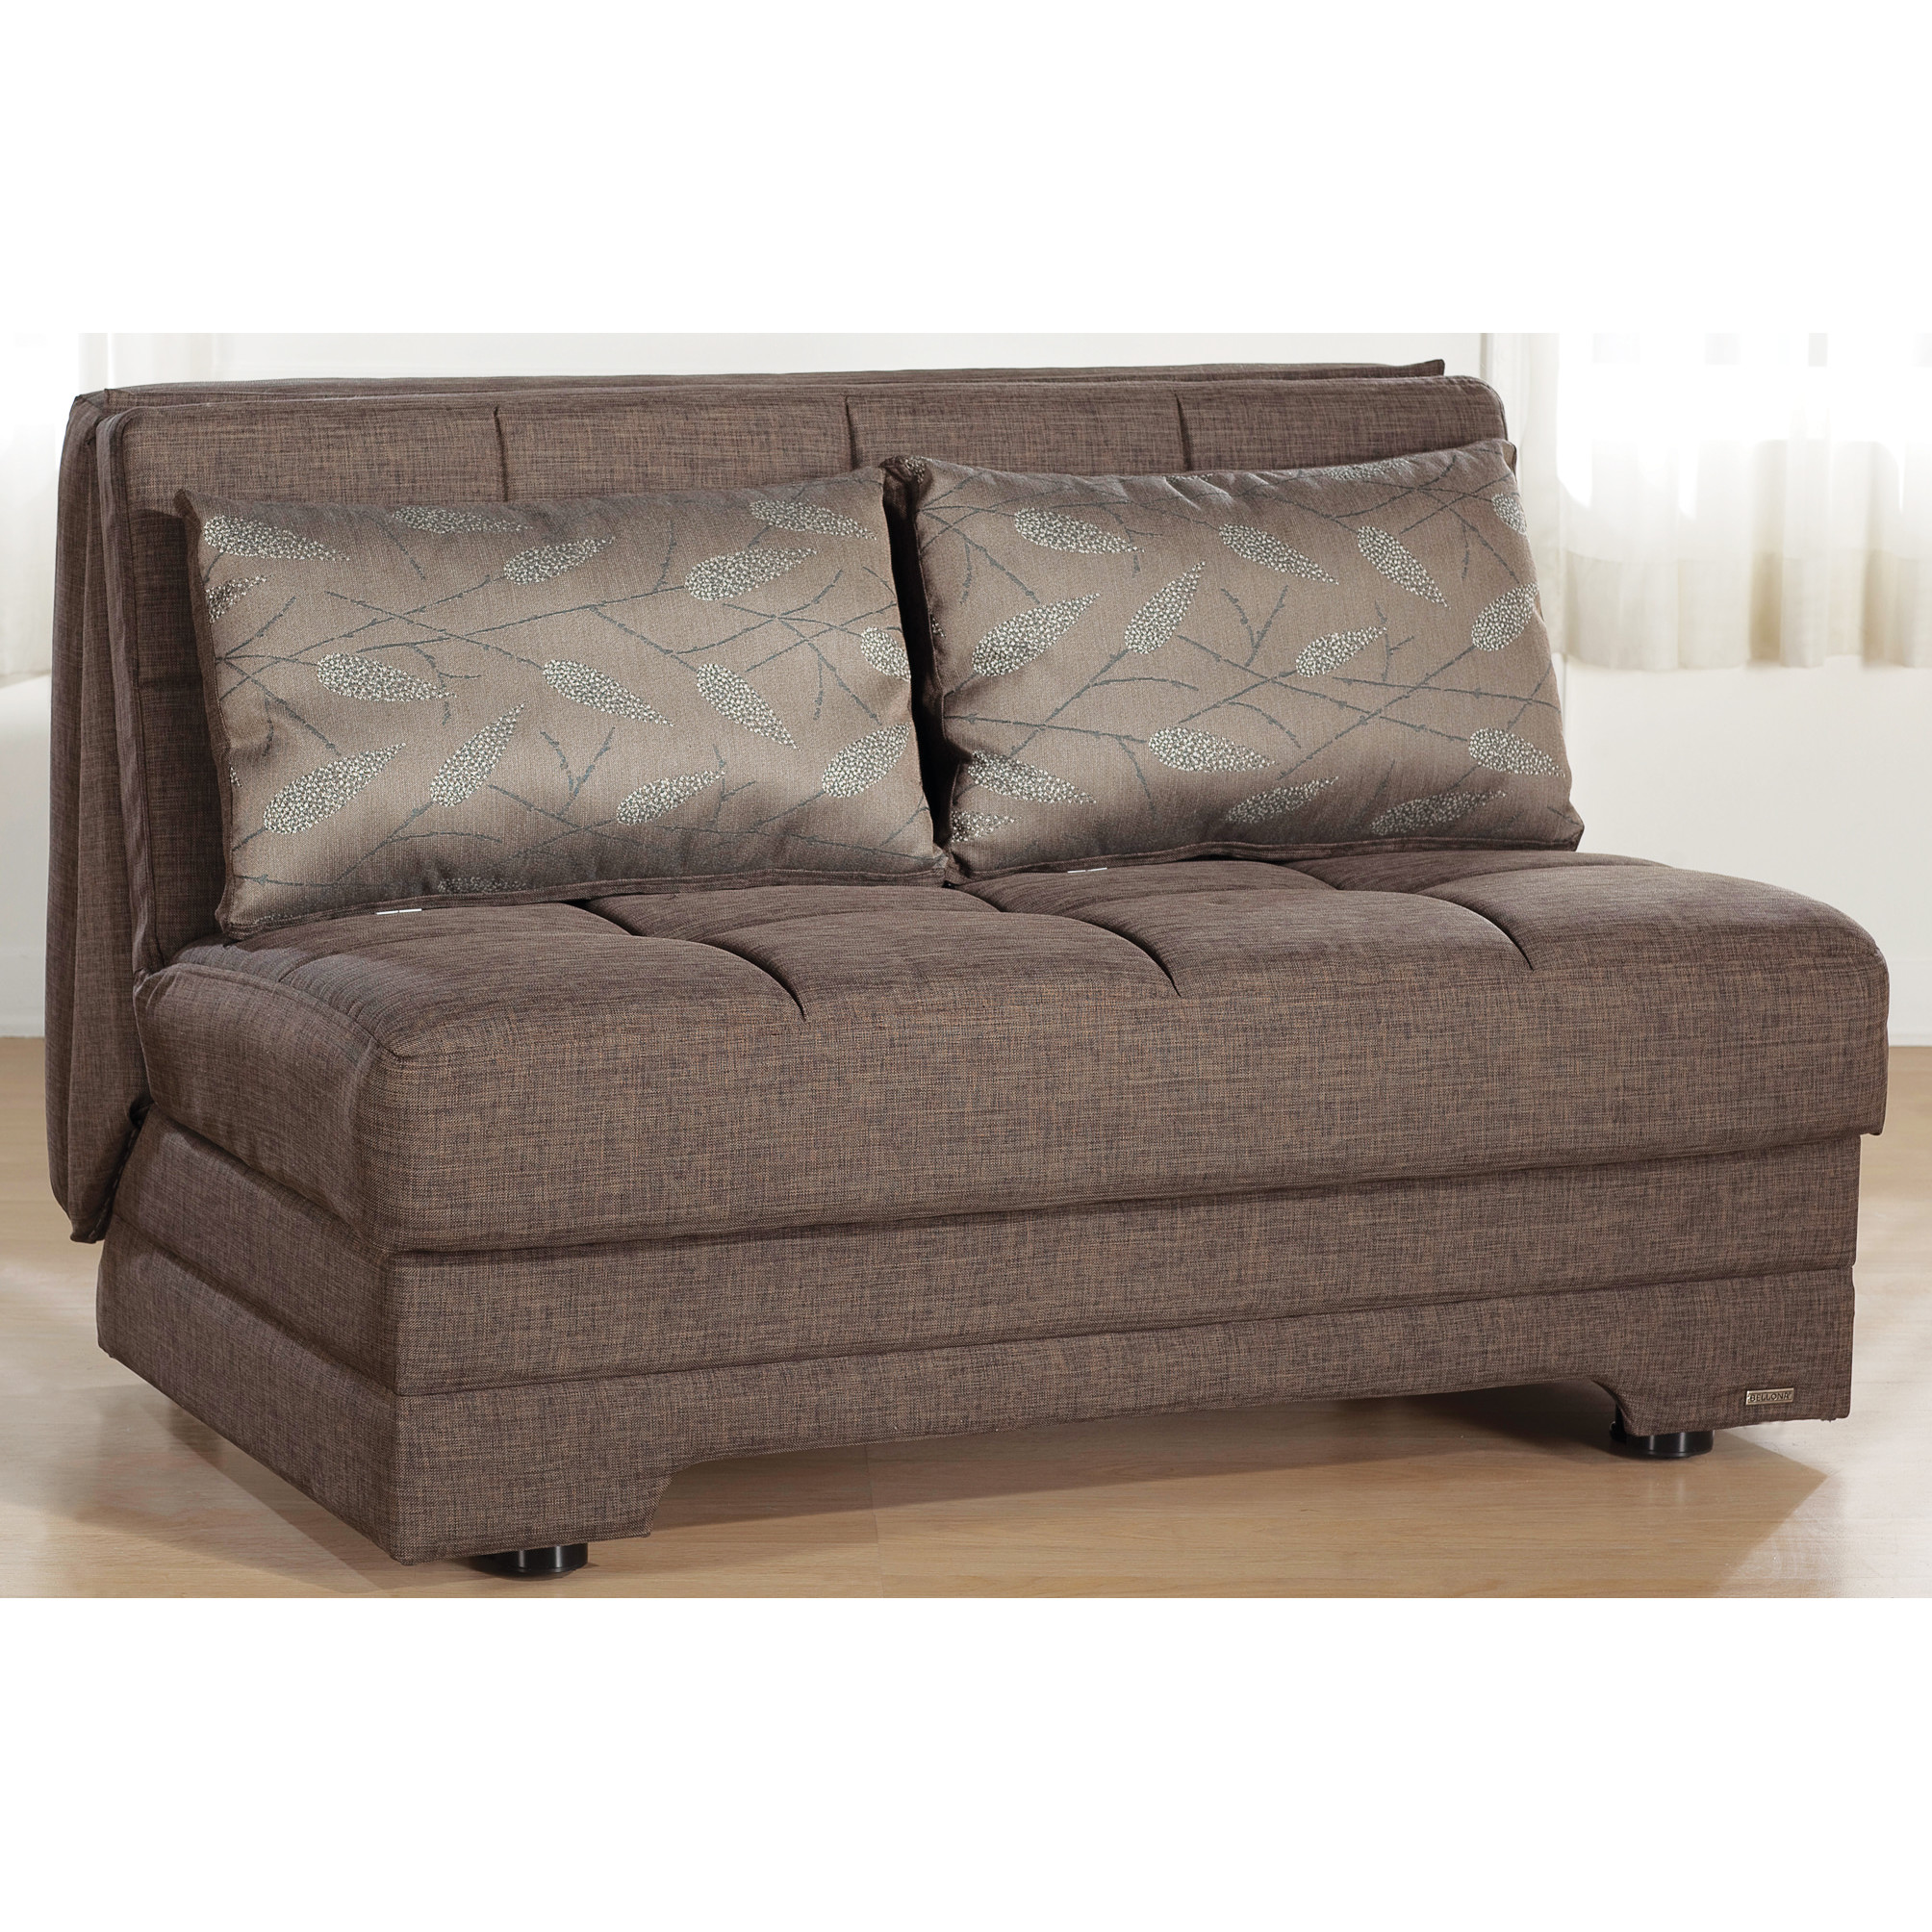 Awesome Istikbal Twist Sleeper Sofa loveseat sleeper sofa